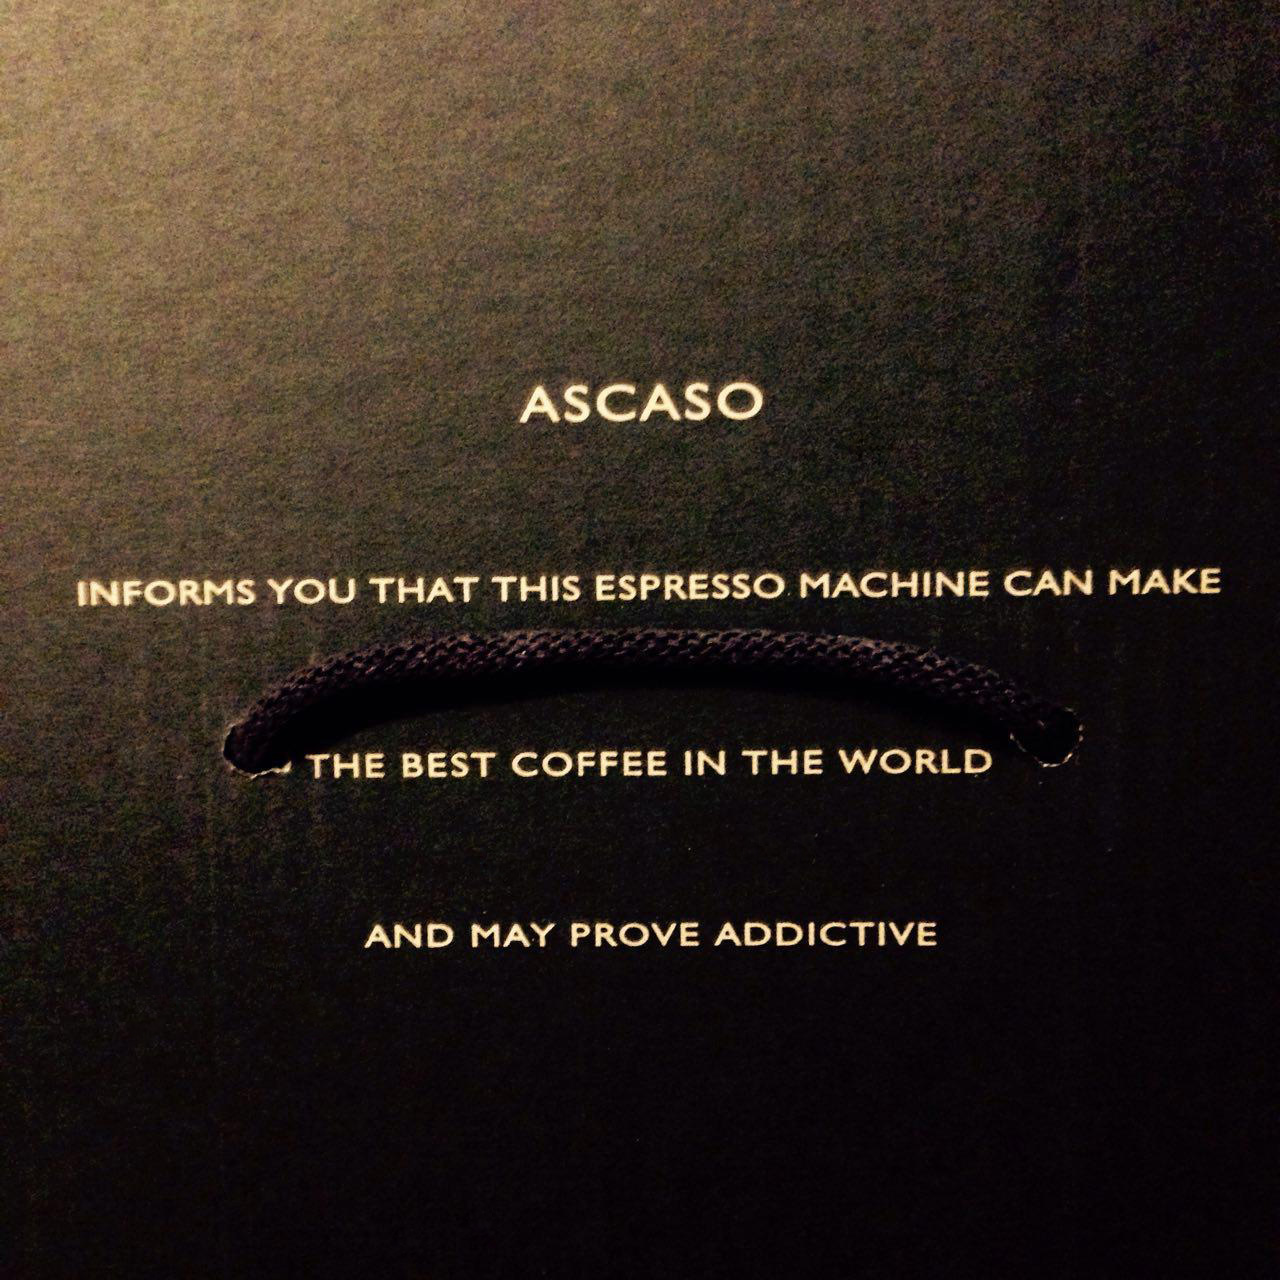 Ascaso informs you that this espresso machine can make the best coffee in the world and may prove addictive